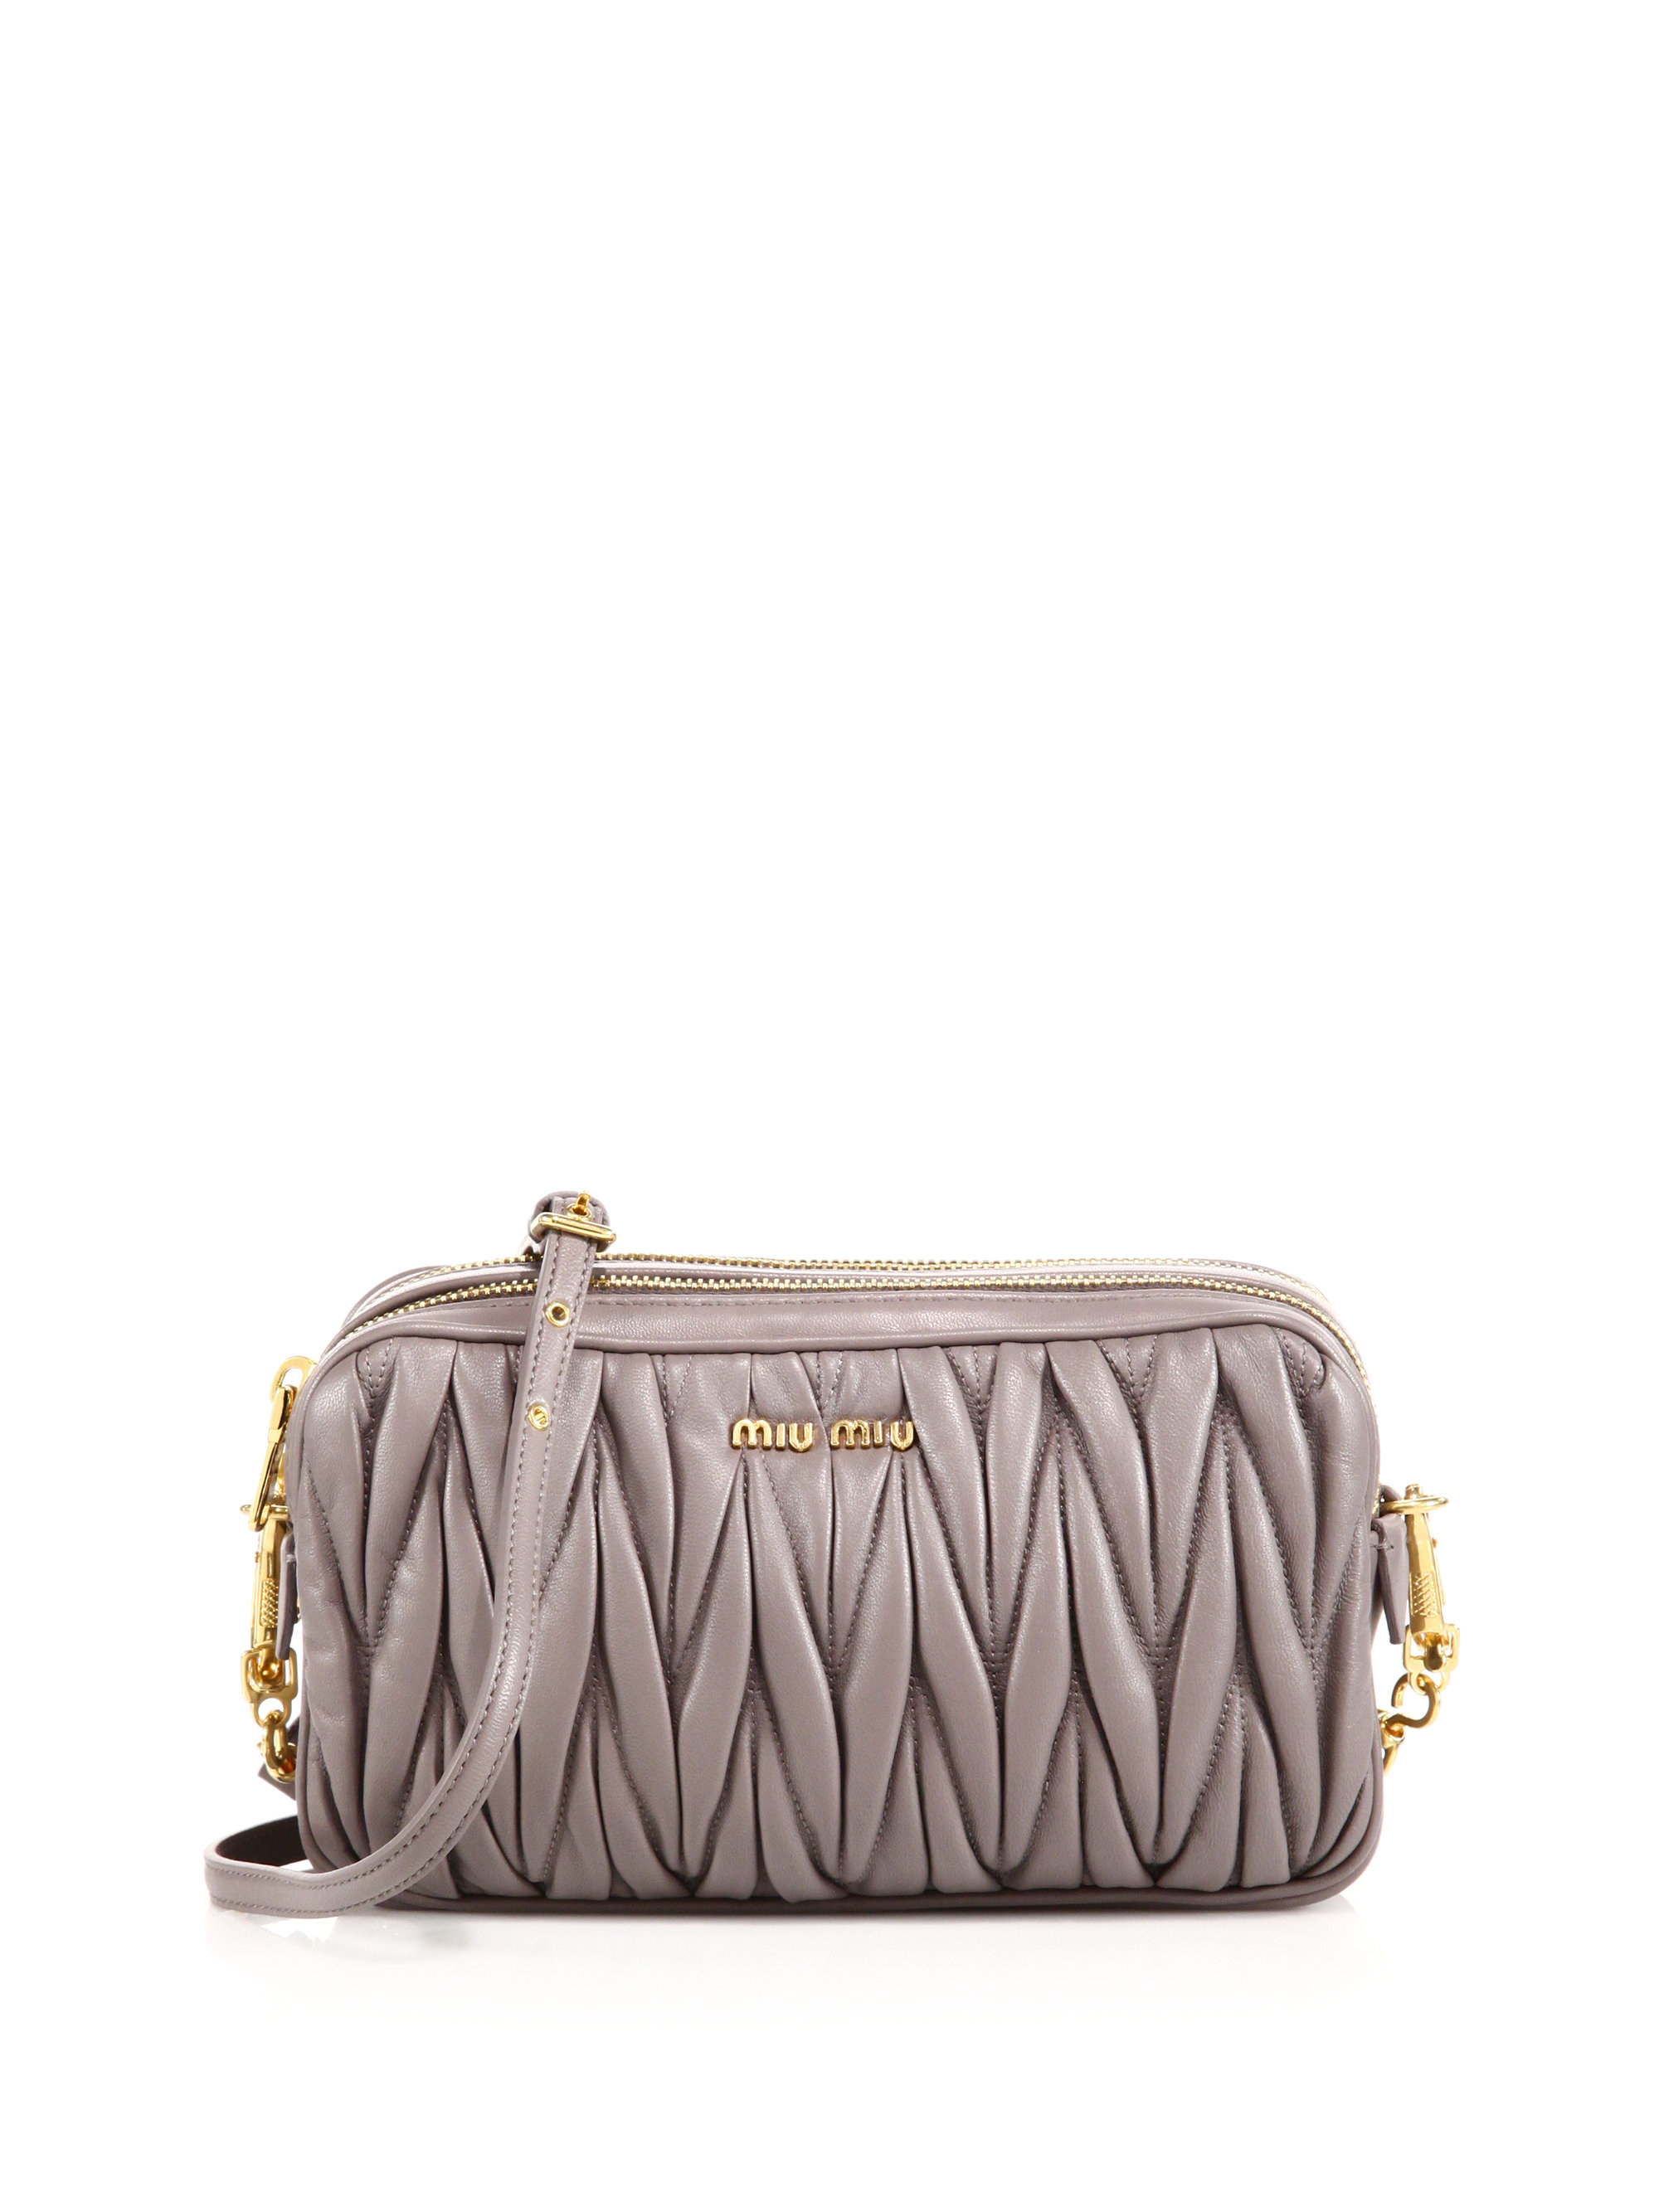 Miu Miu Miu Lady Matelassé Shoulder Bag cjqul